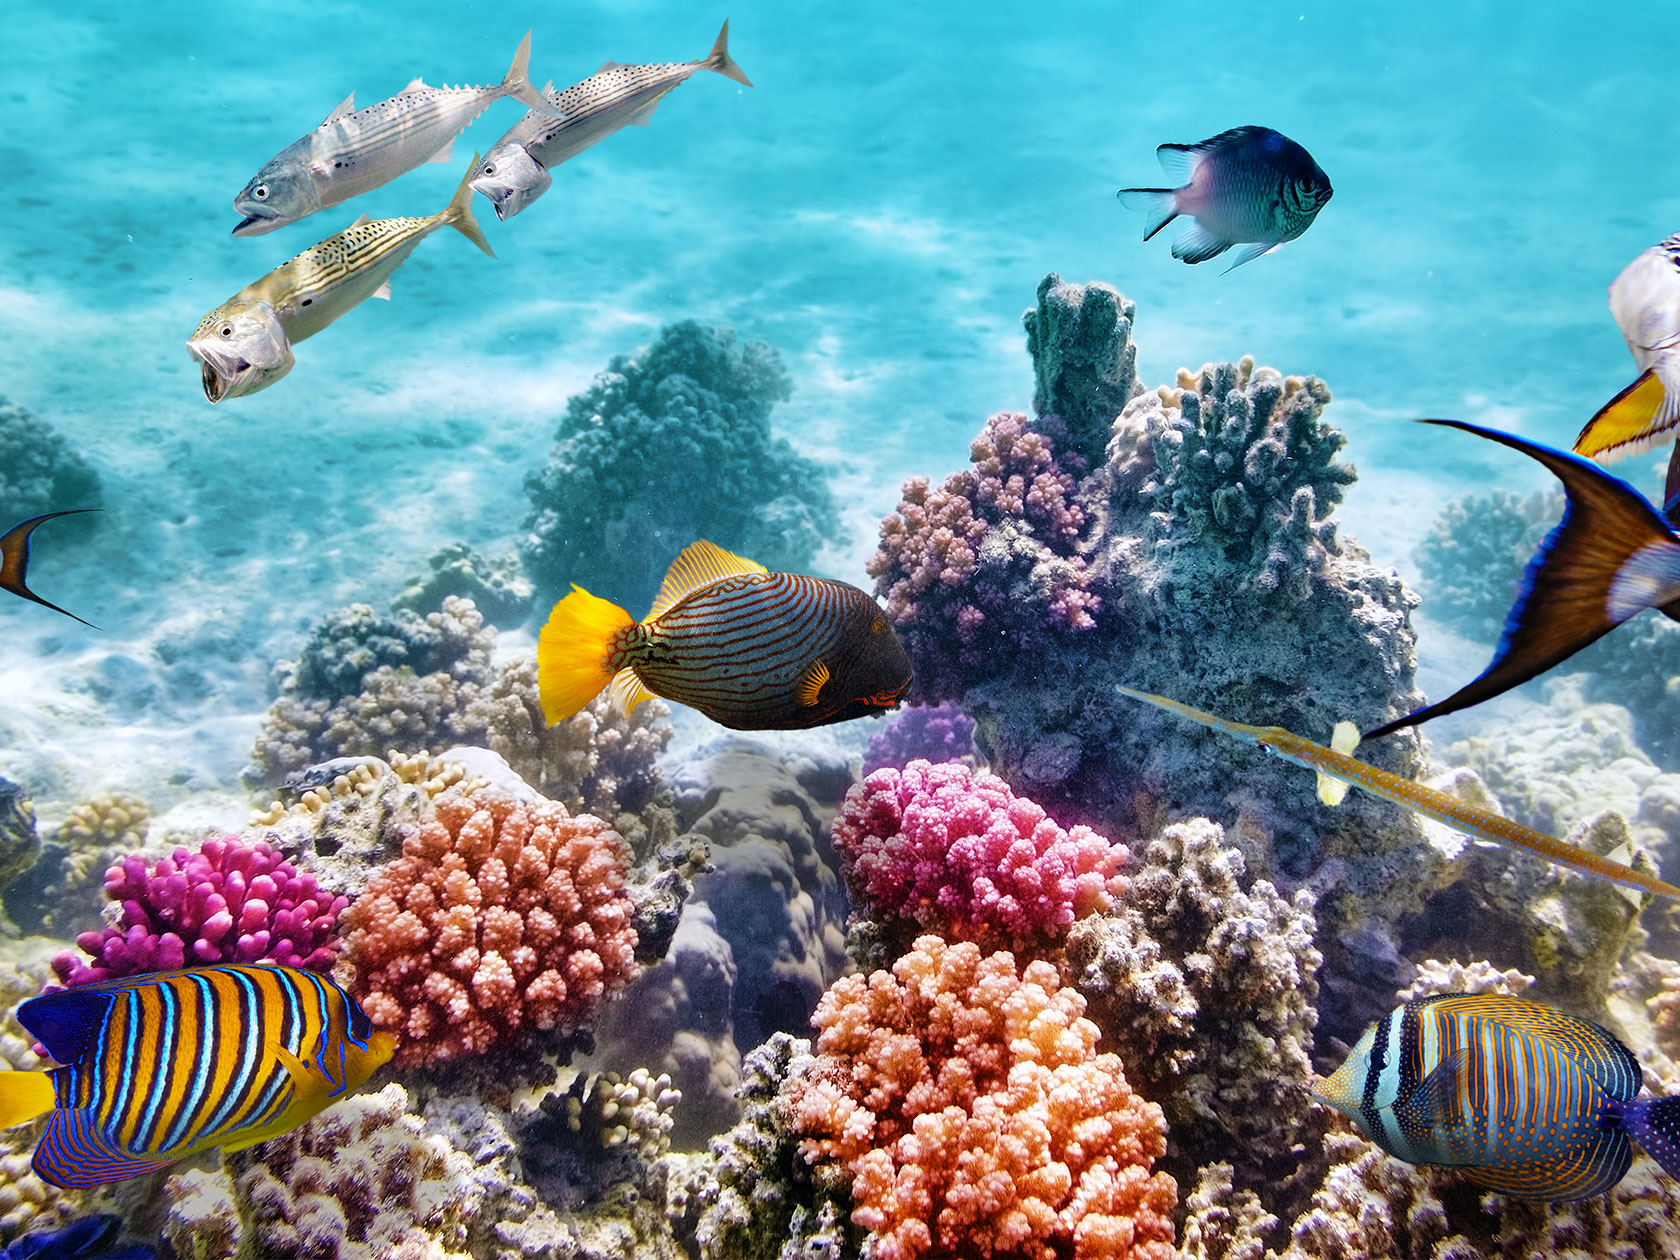 Scuba diving in underwater world with corals and tropical fish.